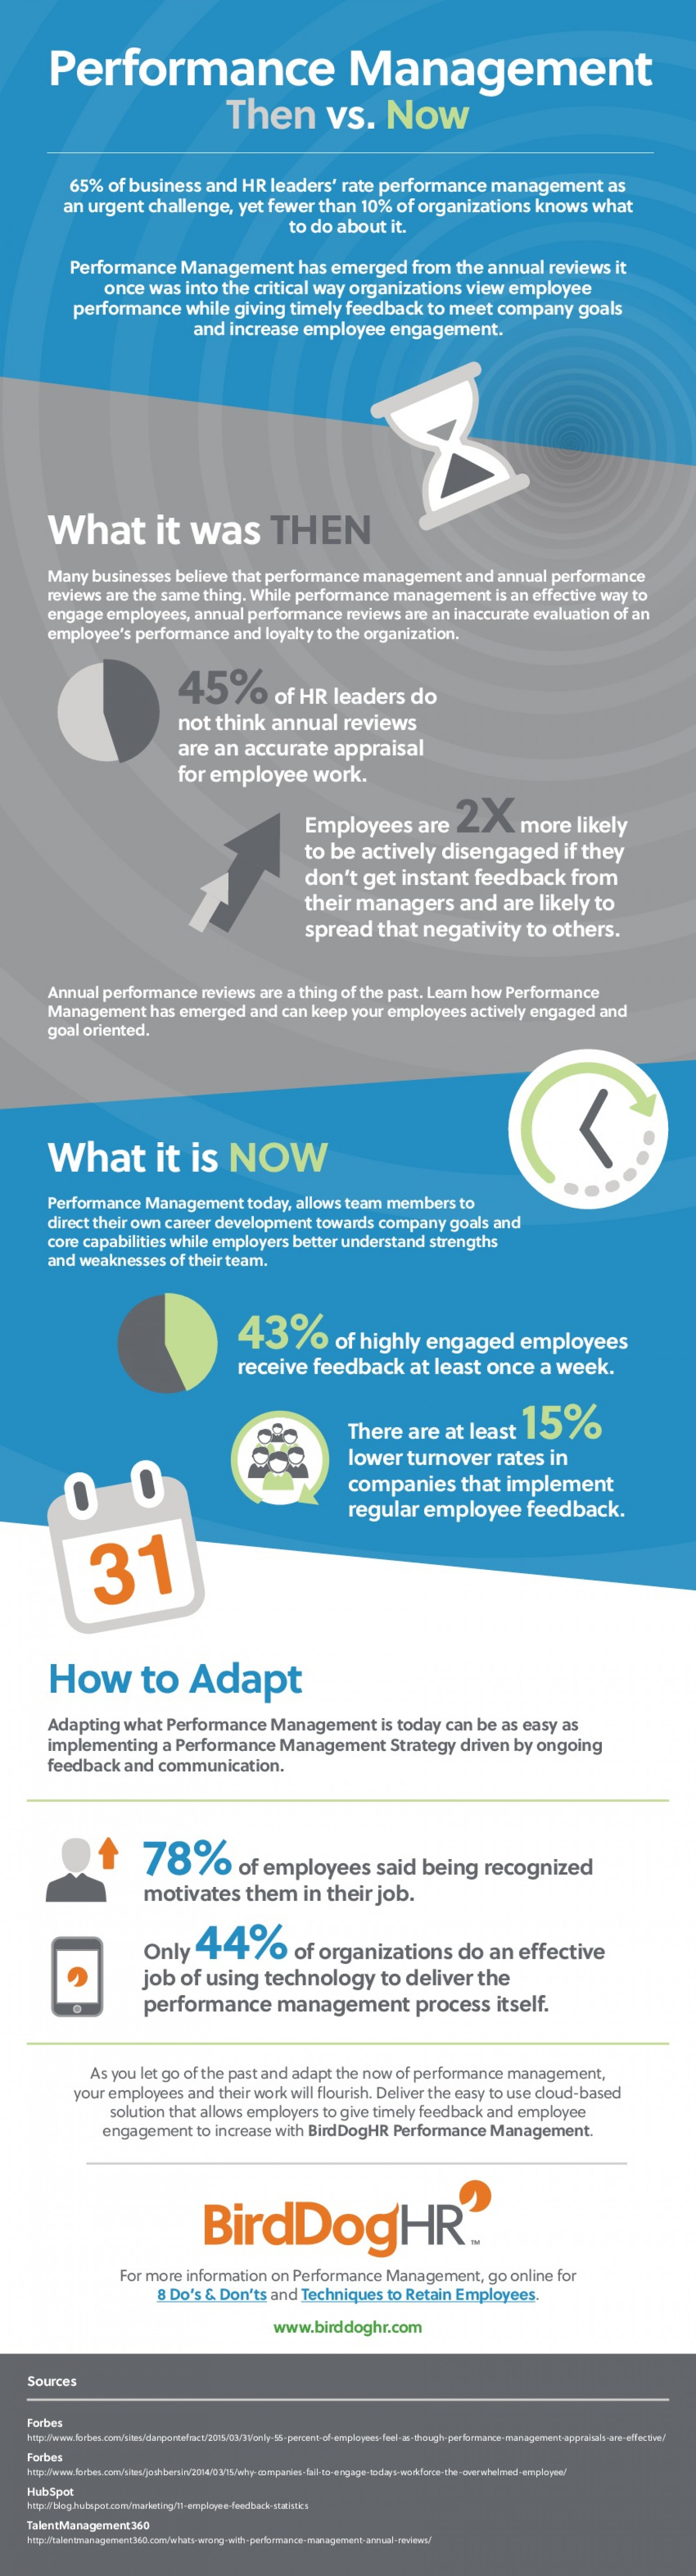 Performance Management Infographic